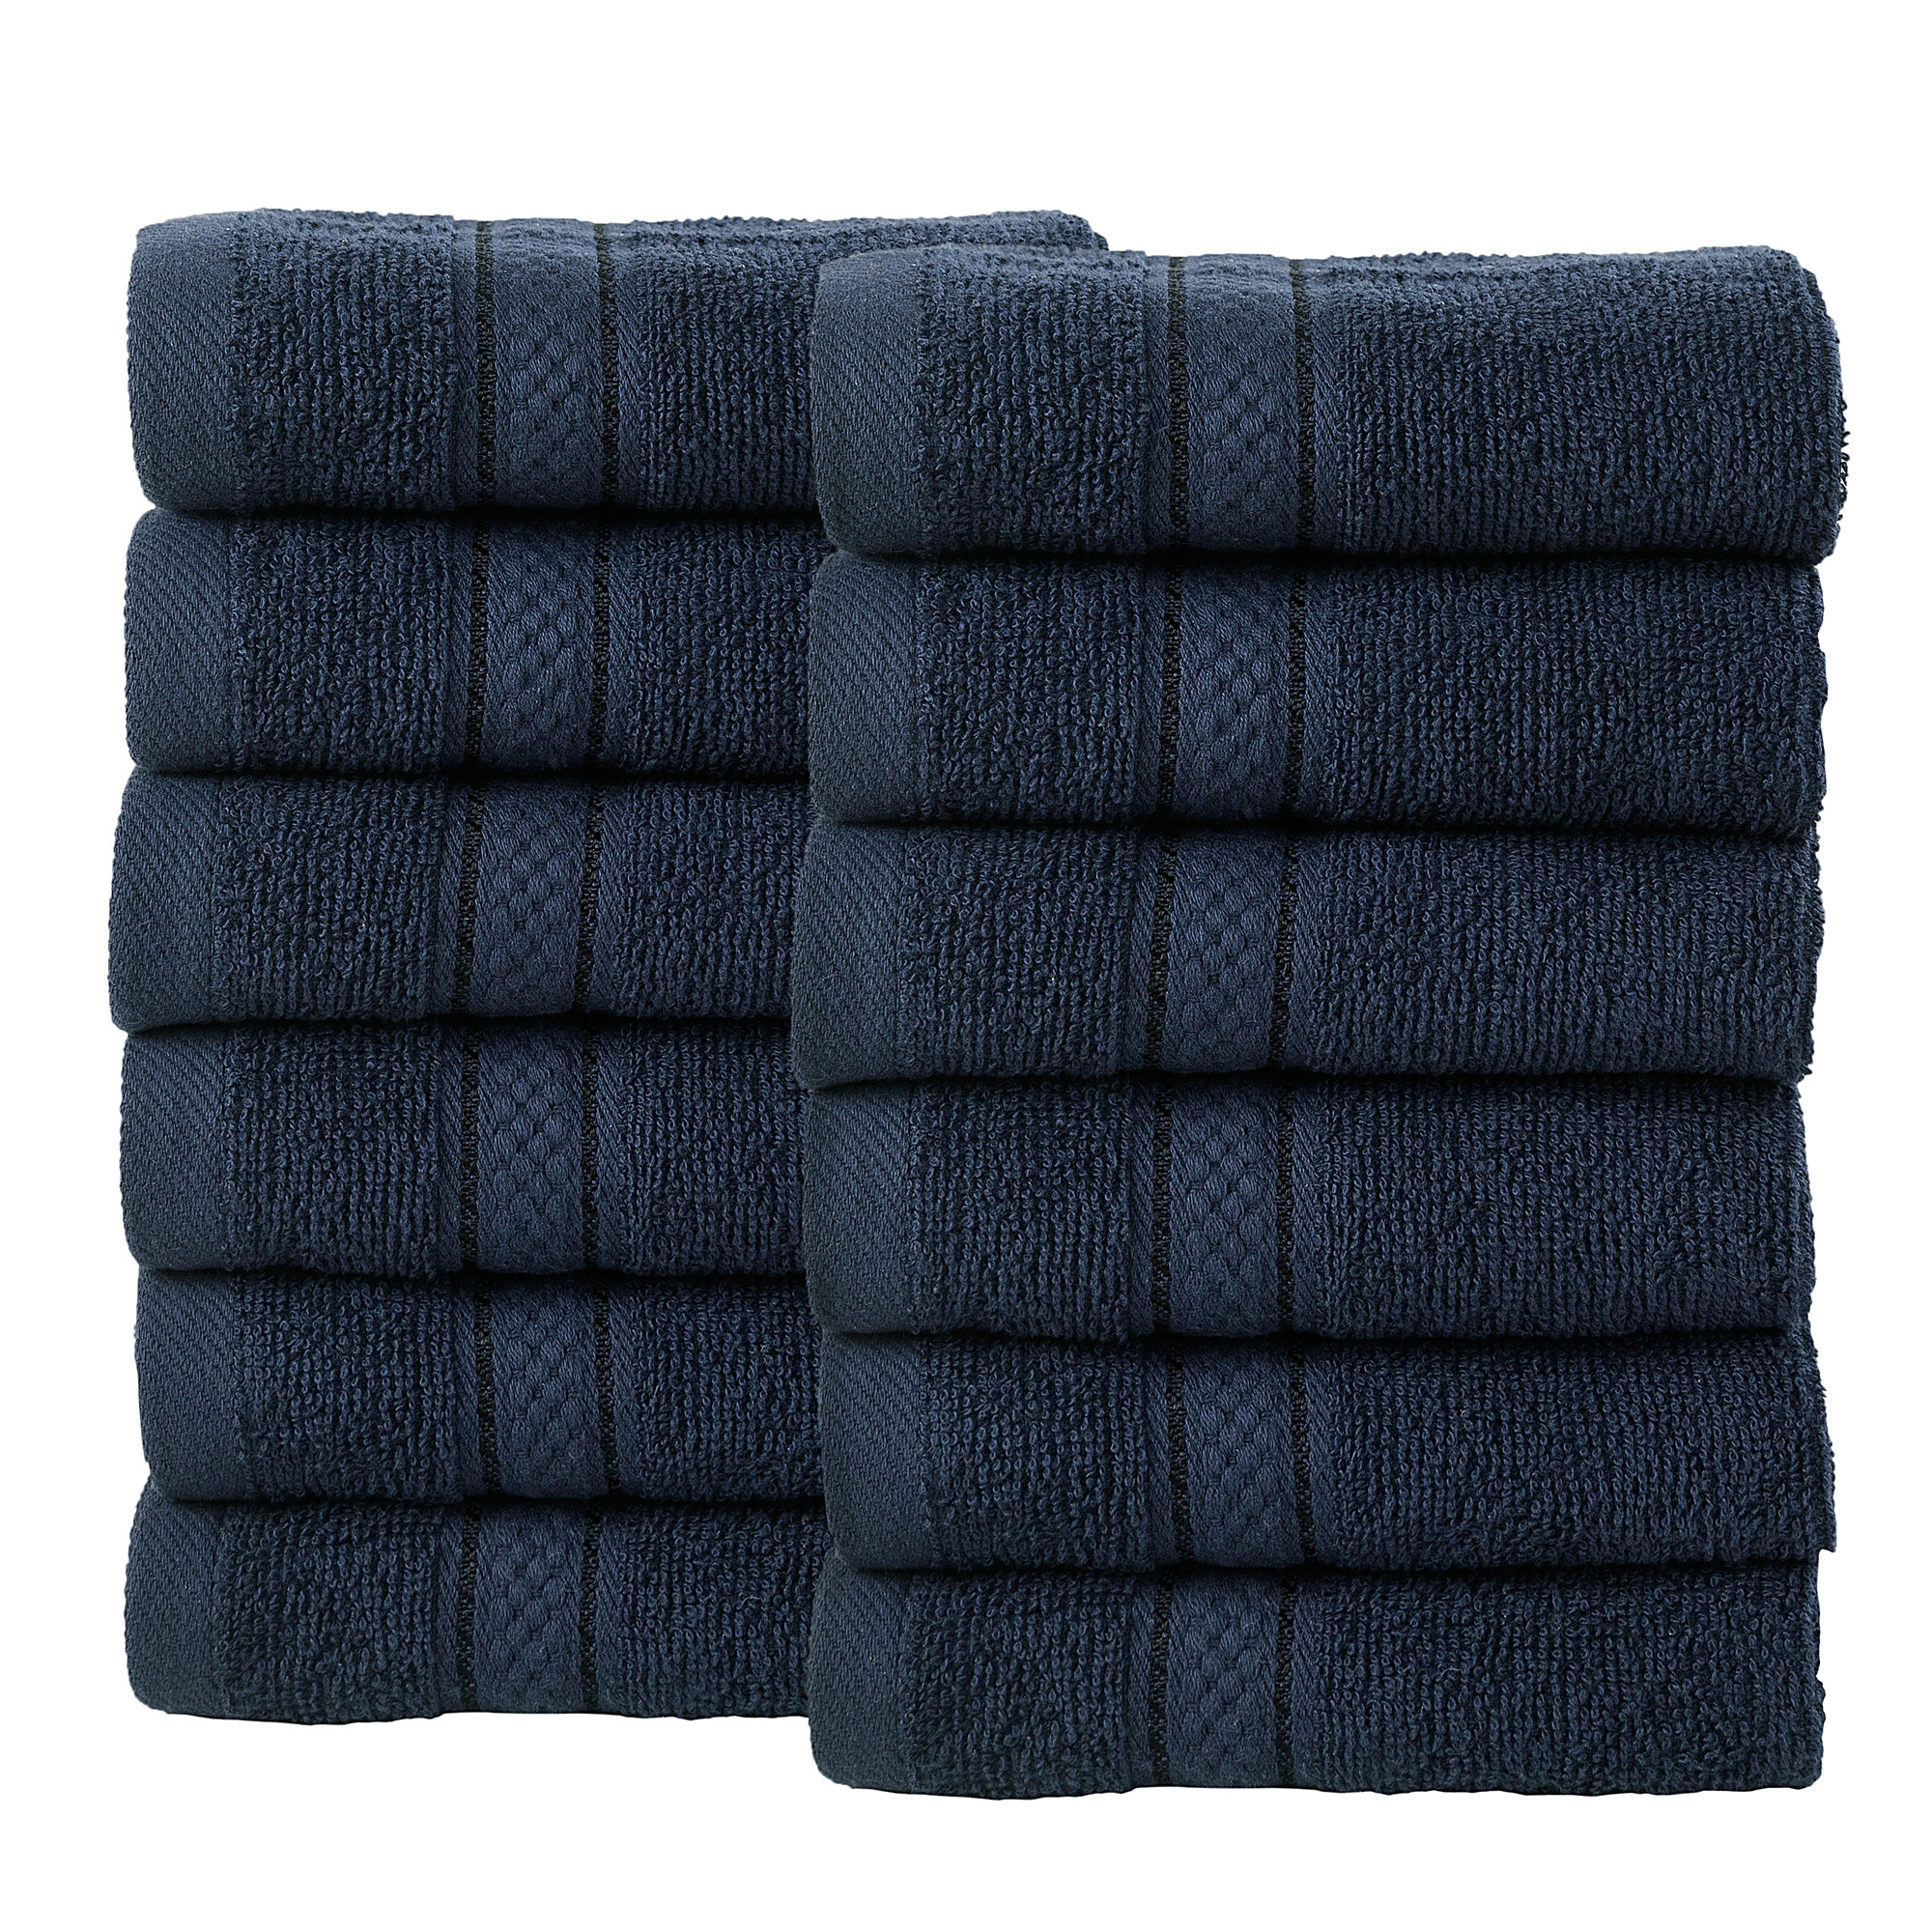 12 Pcs Face Cotton Towel Bale Set Navy Plain